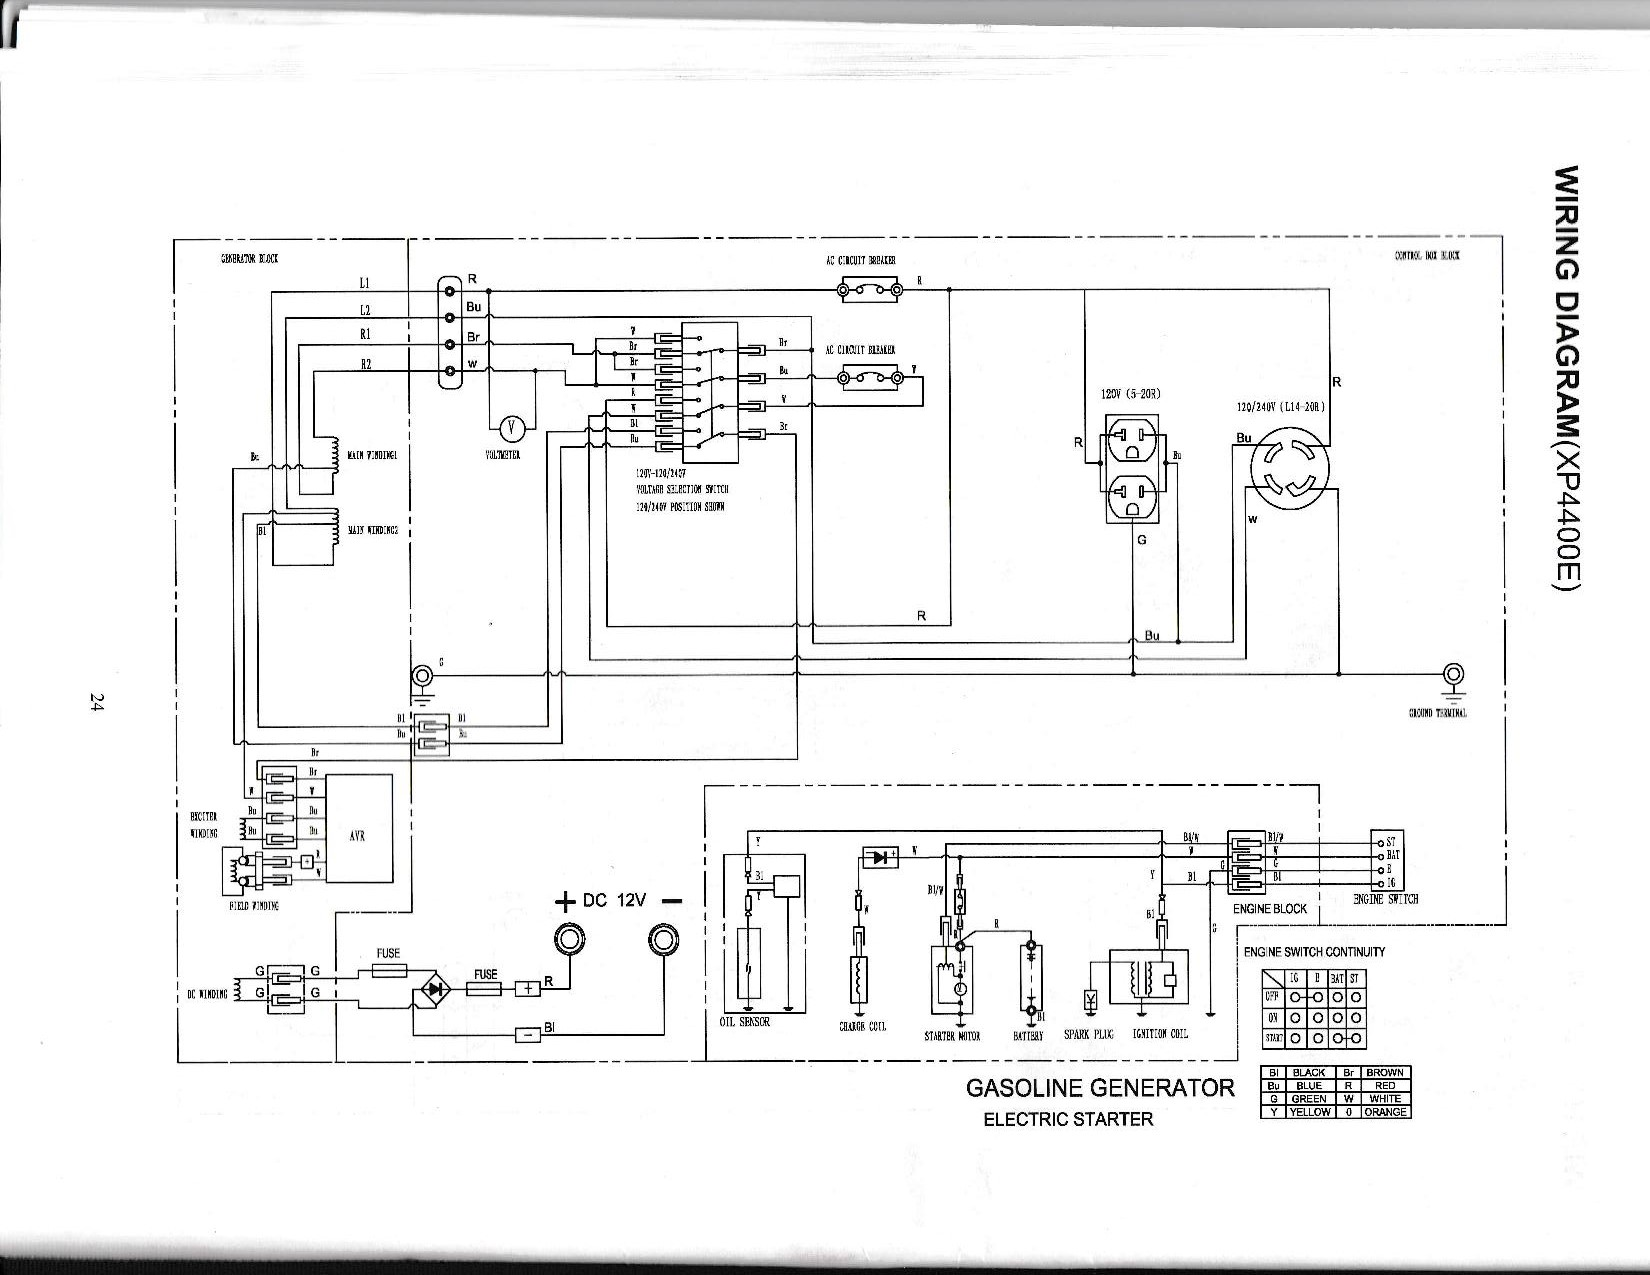 generator auto start wiring diagram porsche 944 diagrams how to a from relay home